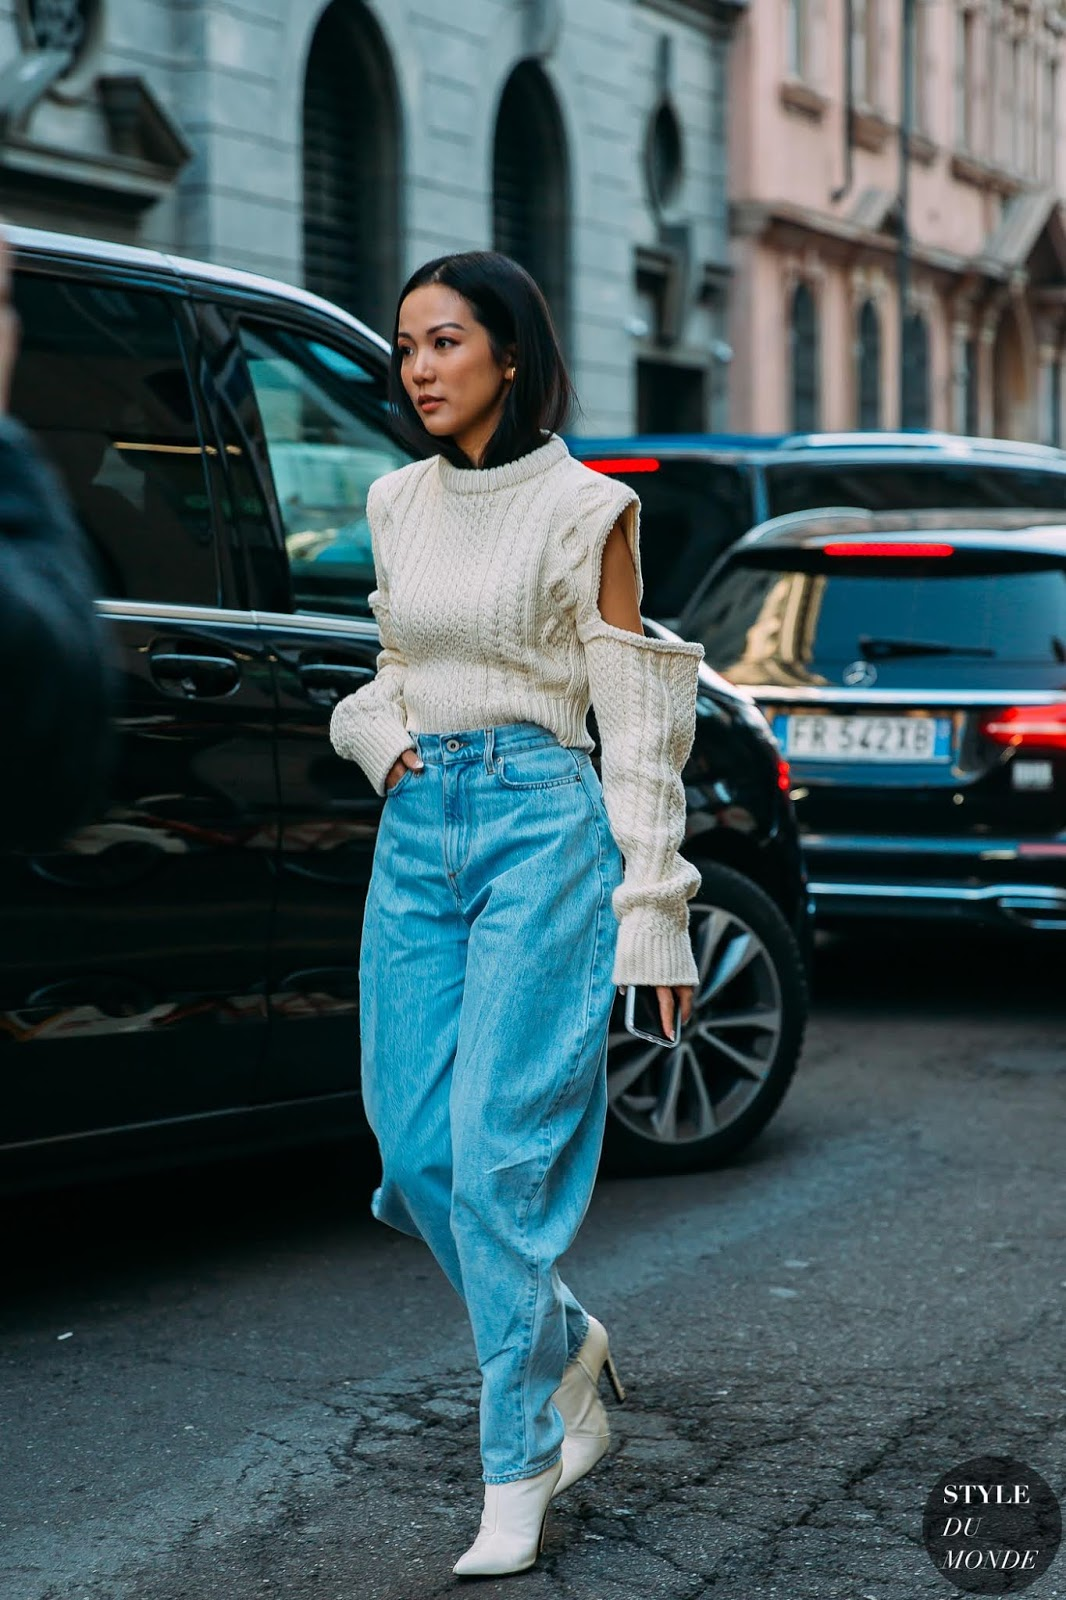 The Best Cut-Out Sweaters To Wear This Fall and Winter